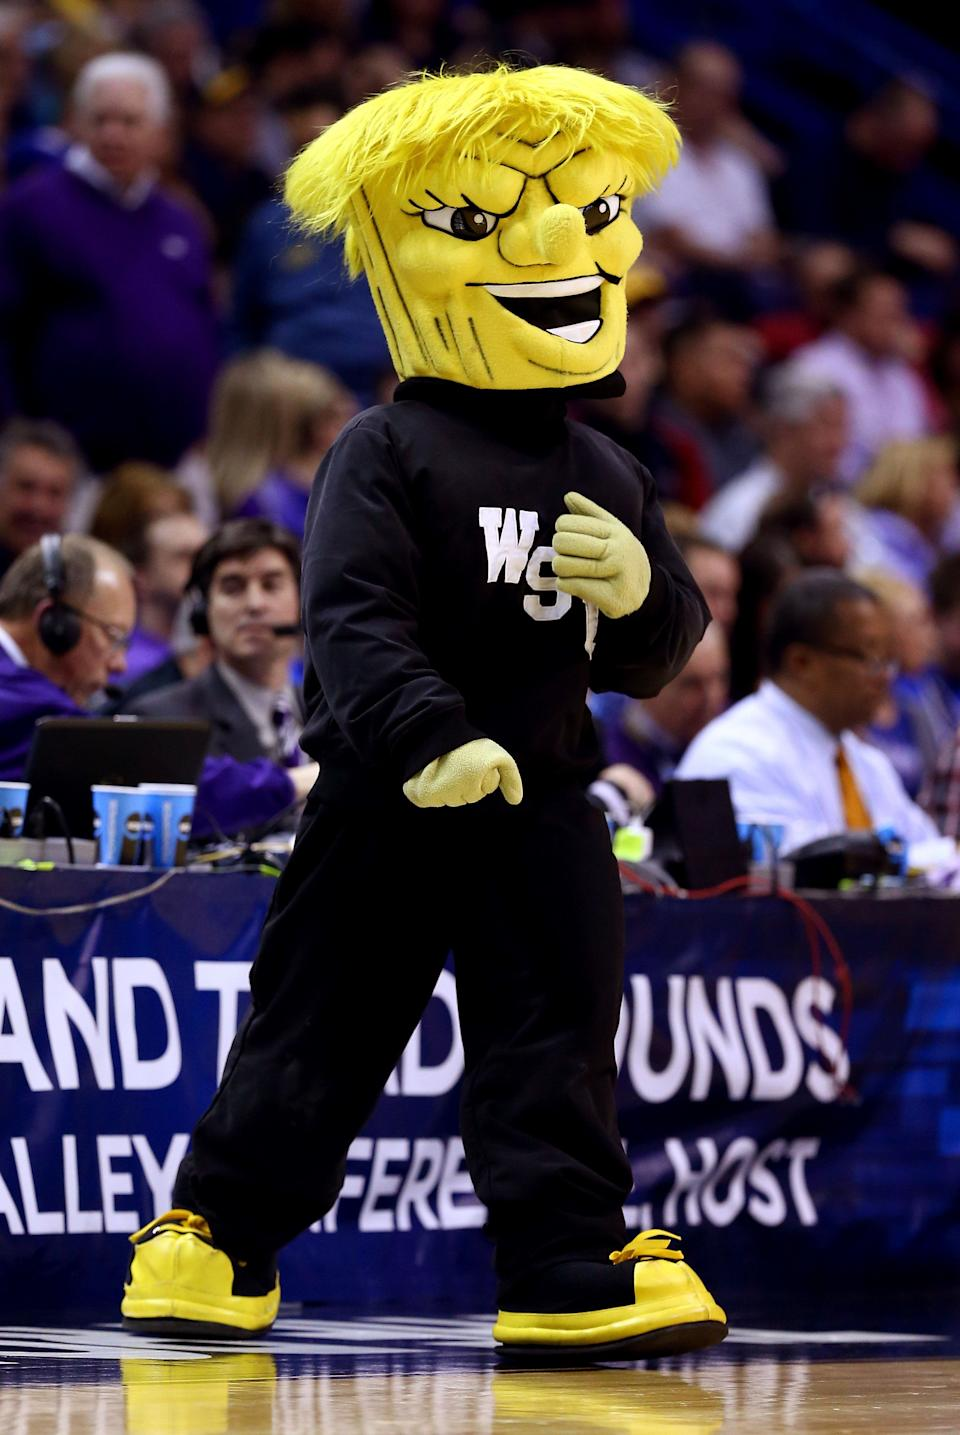 ST LOUIS, MO - MARCH 21: The Wichita State Shockers mascot, WuShock, performs during the second round of the 2014 NCAA Men's Basketball Tournament against the Cal Poly Mustangs at the Scottrade Center on March 21, 2014 in St Louis, Missouri.  (Photo by Andy Lyons/Getty Images)